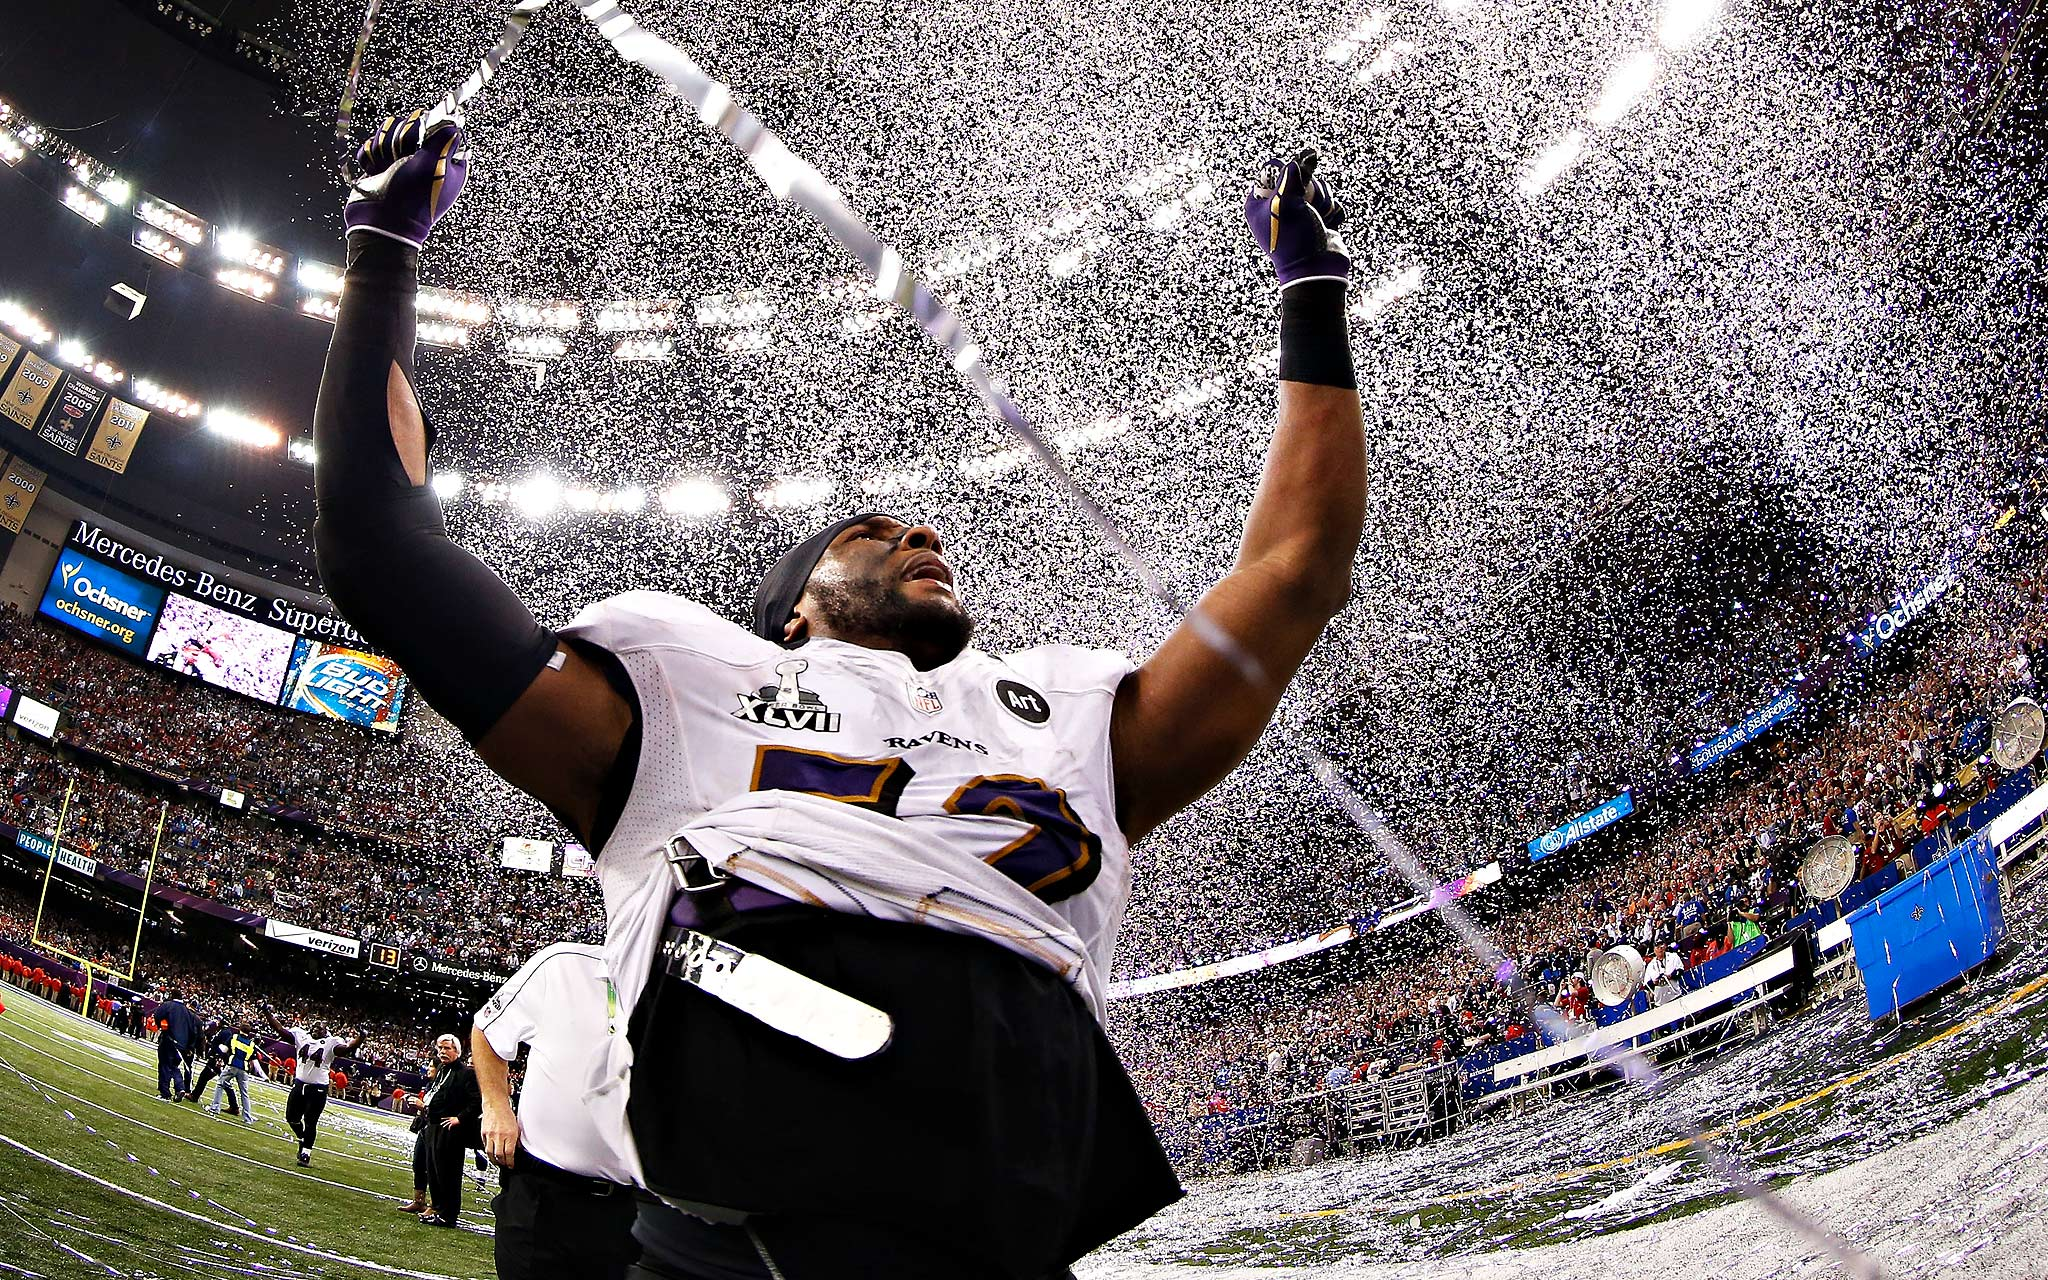 """analysis of impact of super bowl The impact of the super bowl has been a phenomenon in fact, since january 1967 """"it has become part of the american culture, which illustrates that it has become the single-most important event in the sporting world currently"""" (johnson, savidge, pp 83."""